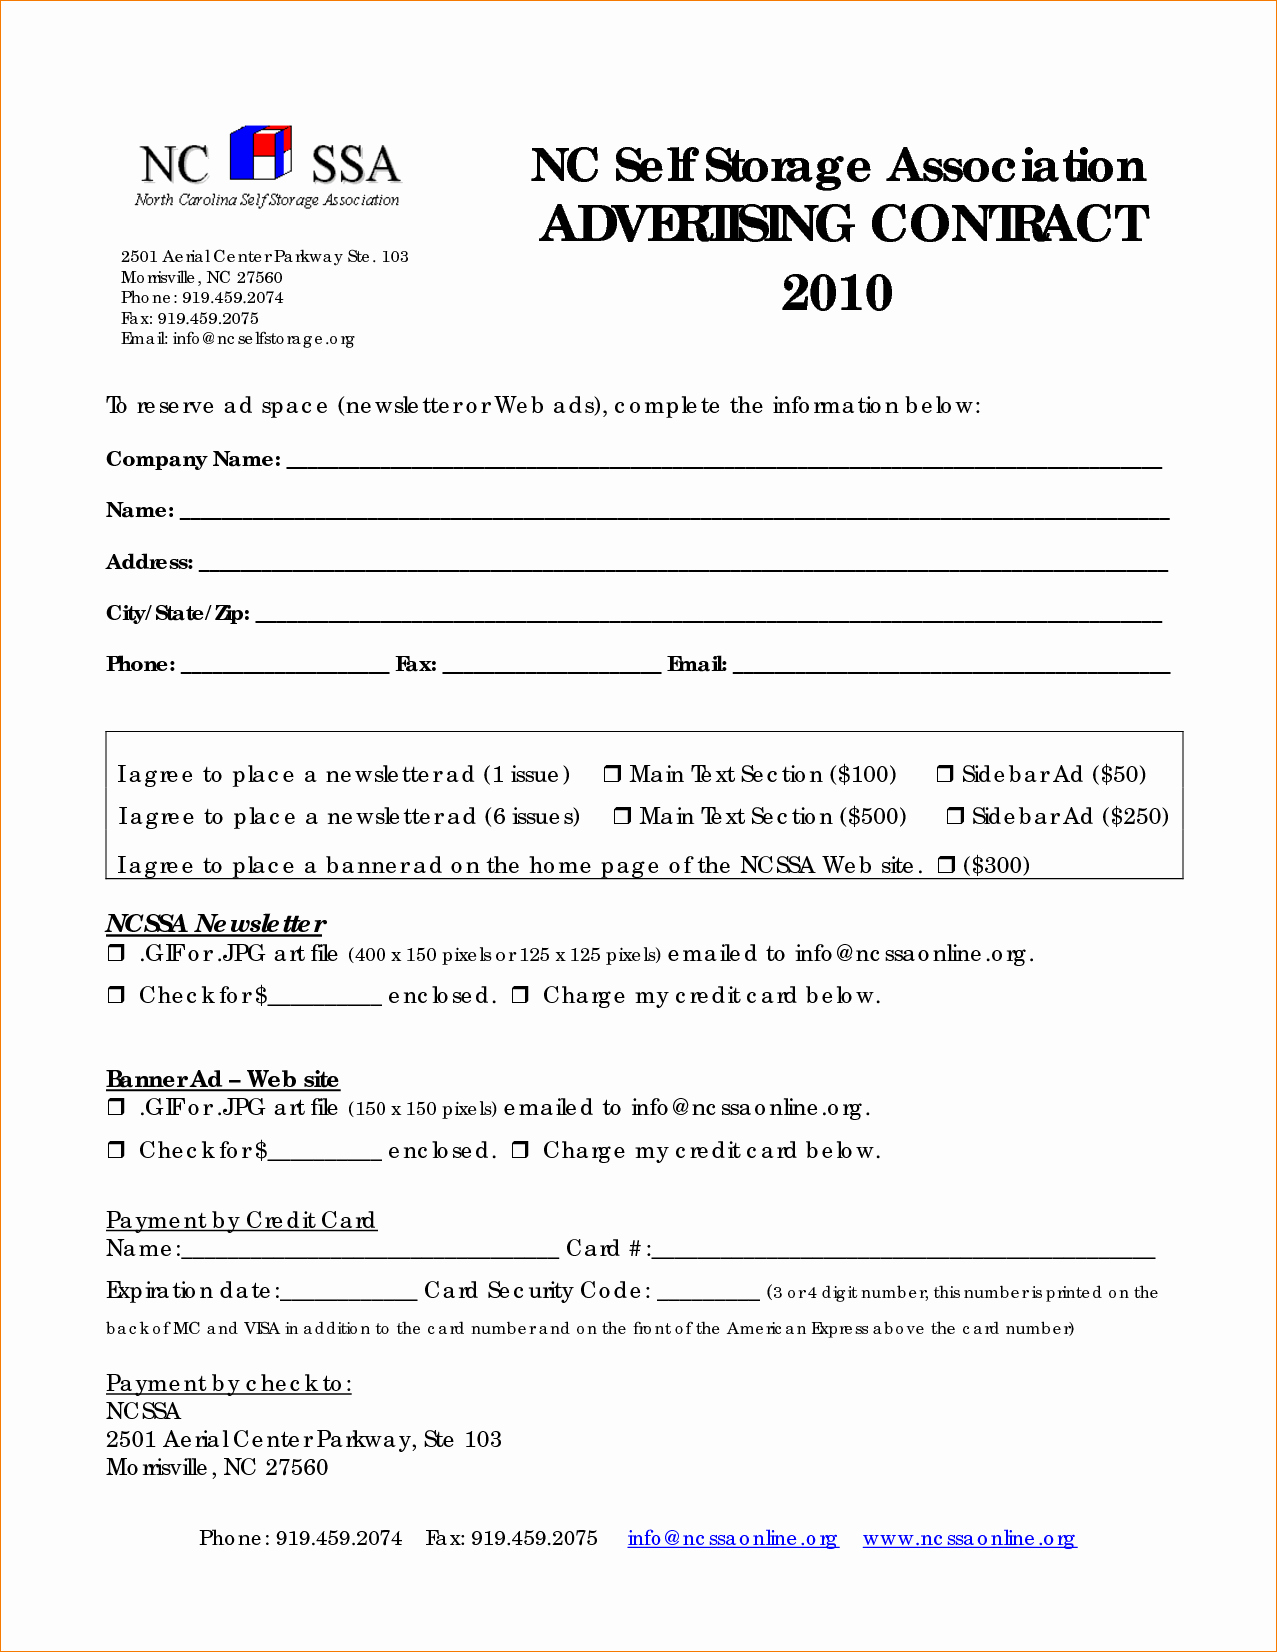 Advertising Contract Template Free Unique 6 Advertising Contract Template